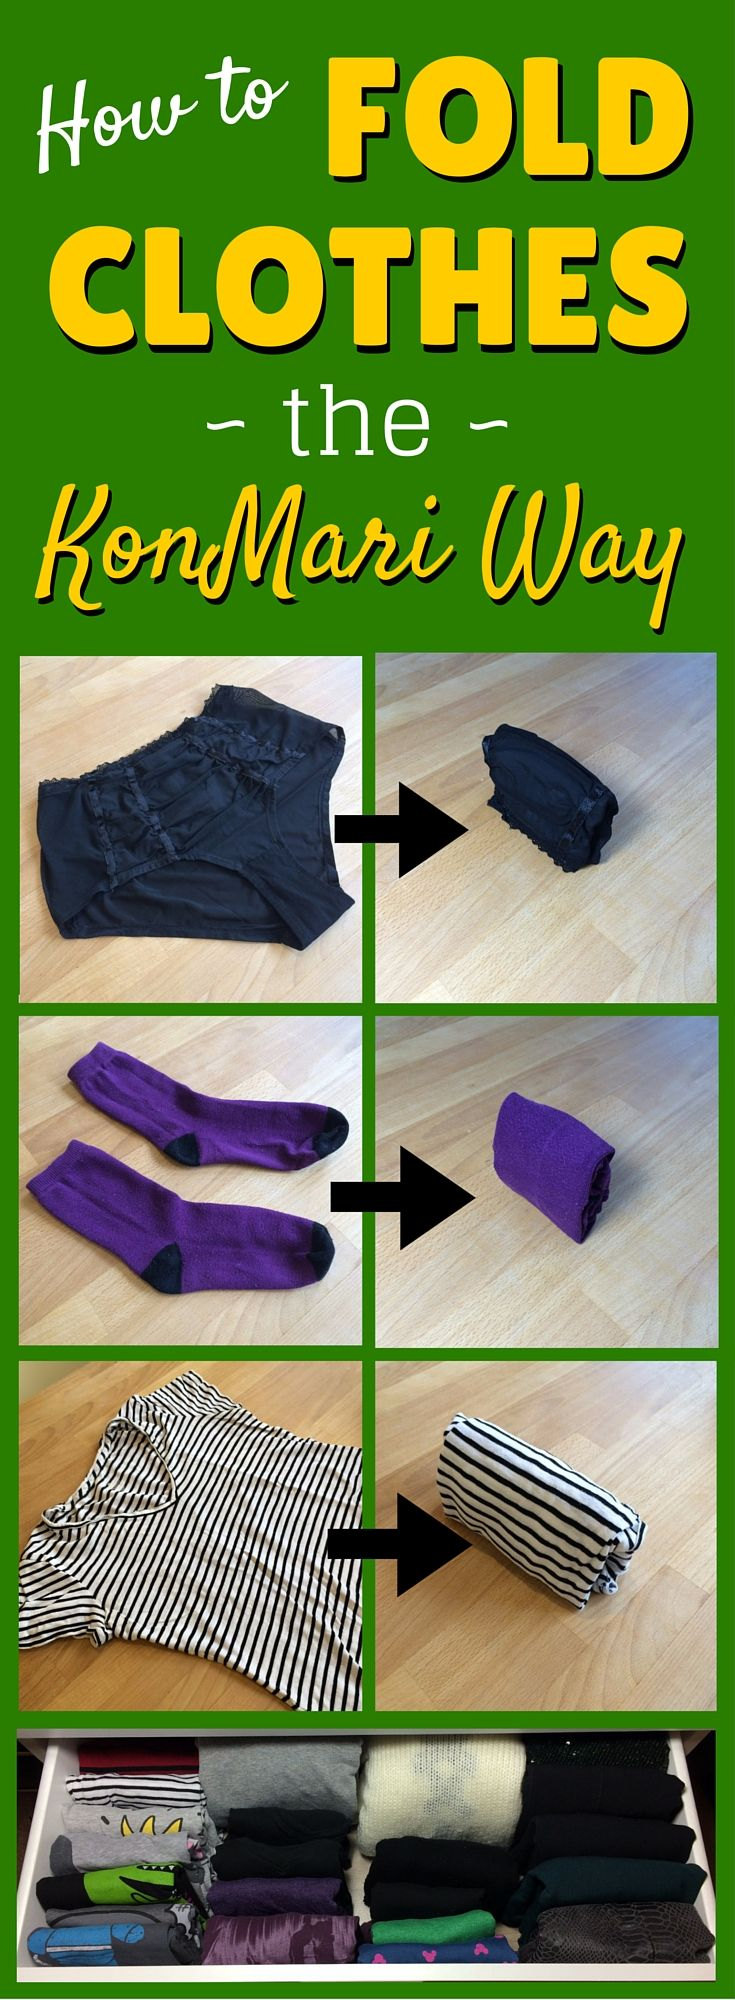 Video demo: How to fold clothes the KonMari way (including t-shirts, jumpers, shirts, hoodies, tank tops, underwear, socks, trousers, dresses, skirts, bras, swimwear and workout gear) -- https://www.youtube.com/watch?v=mZH8-hG2y2Y